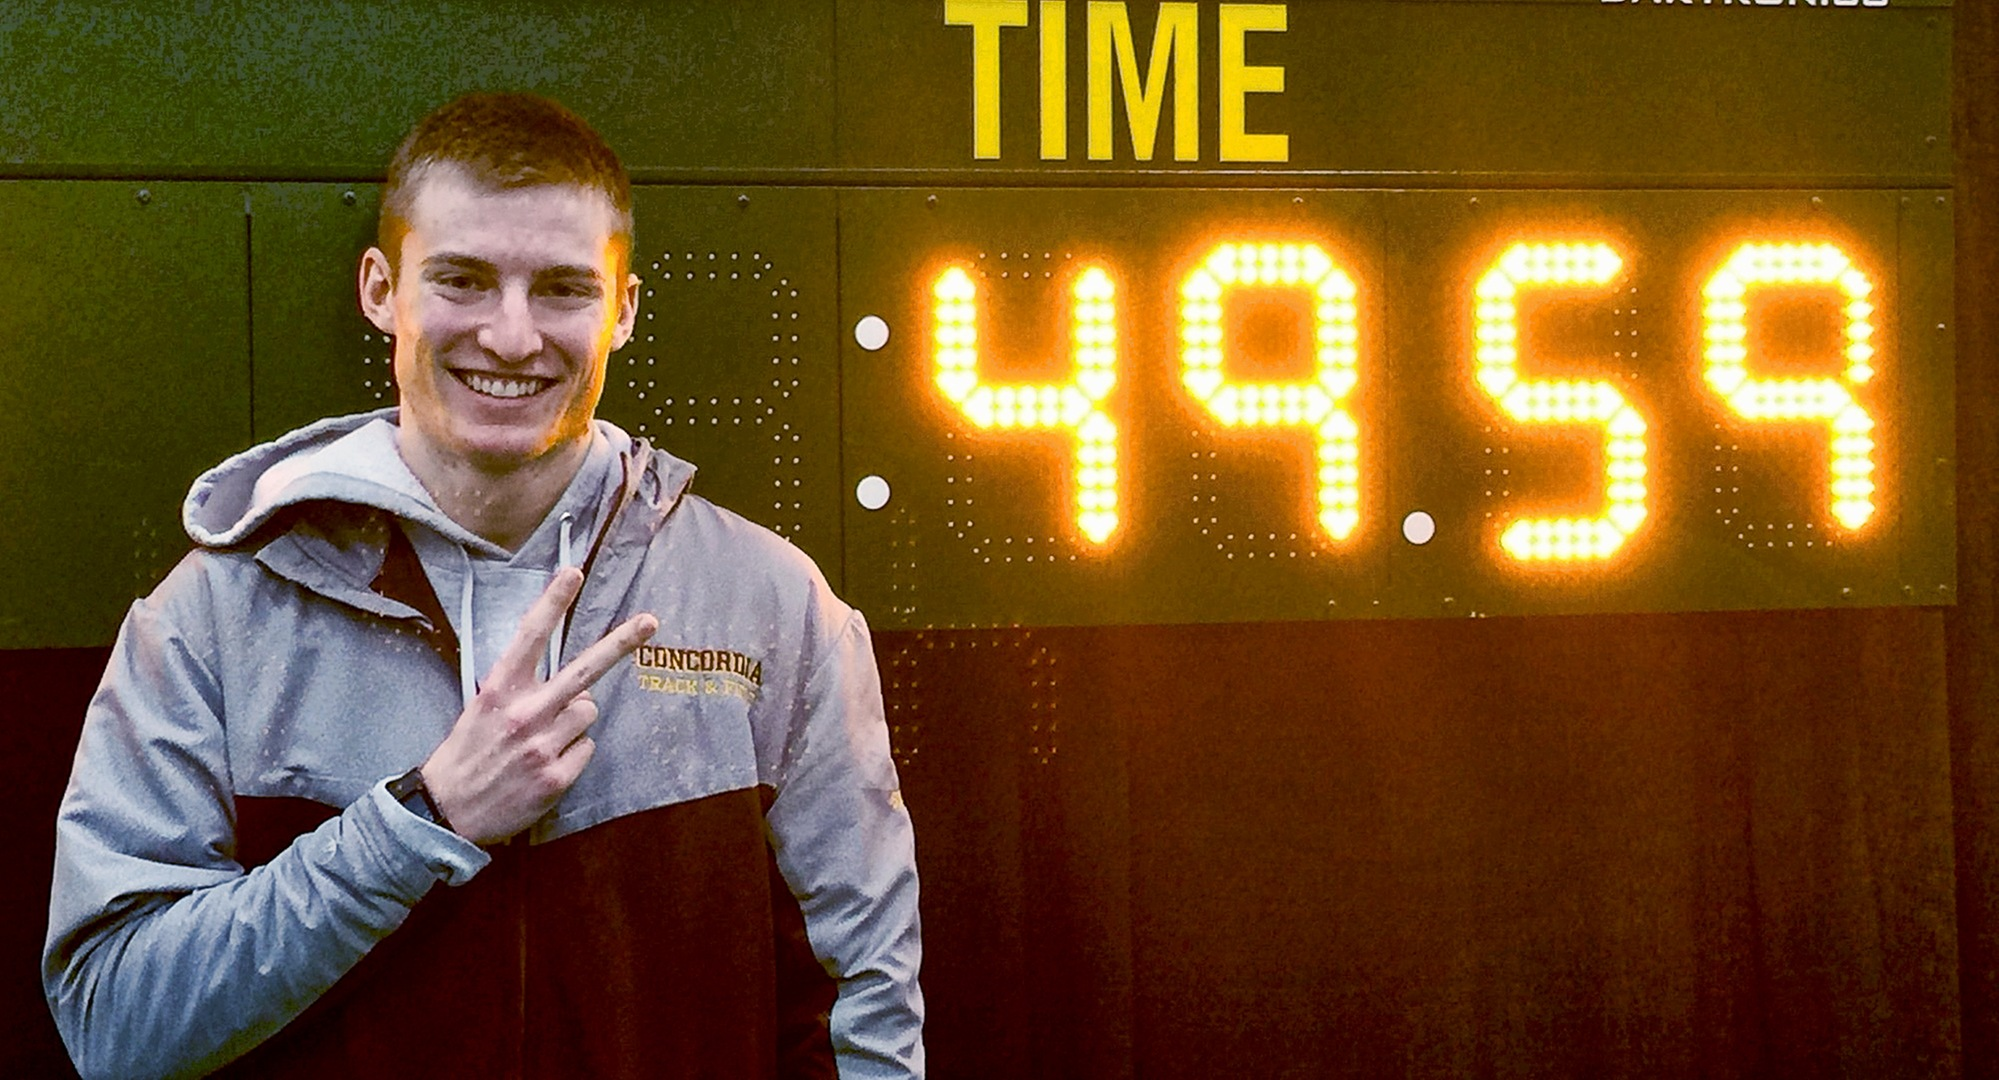 Sophomore David Supinski stands next to his school record time in the 400 meters after breaking his second school record mark over the weekend.